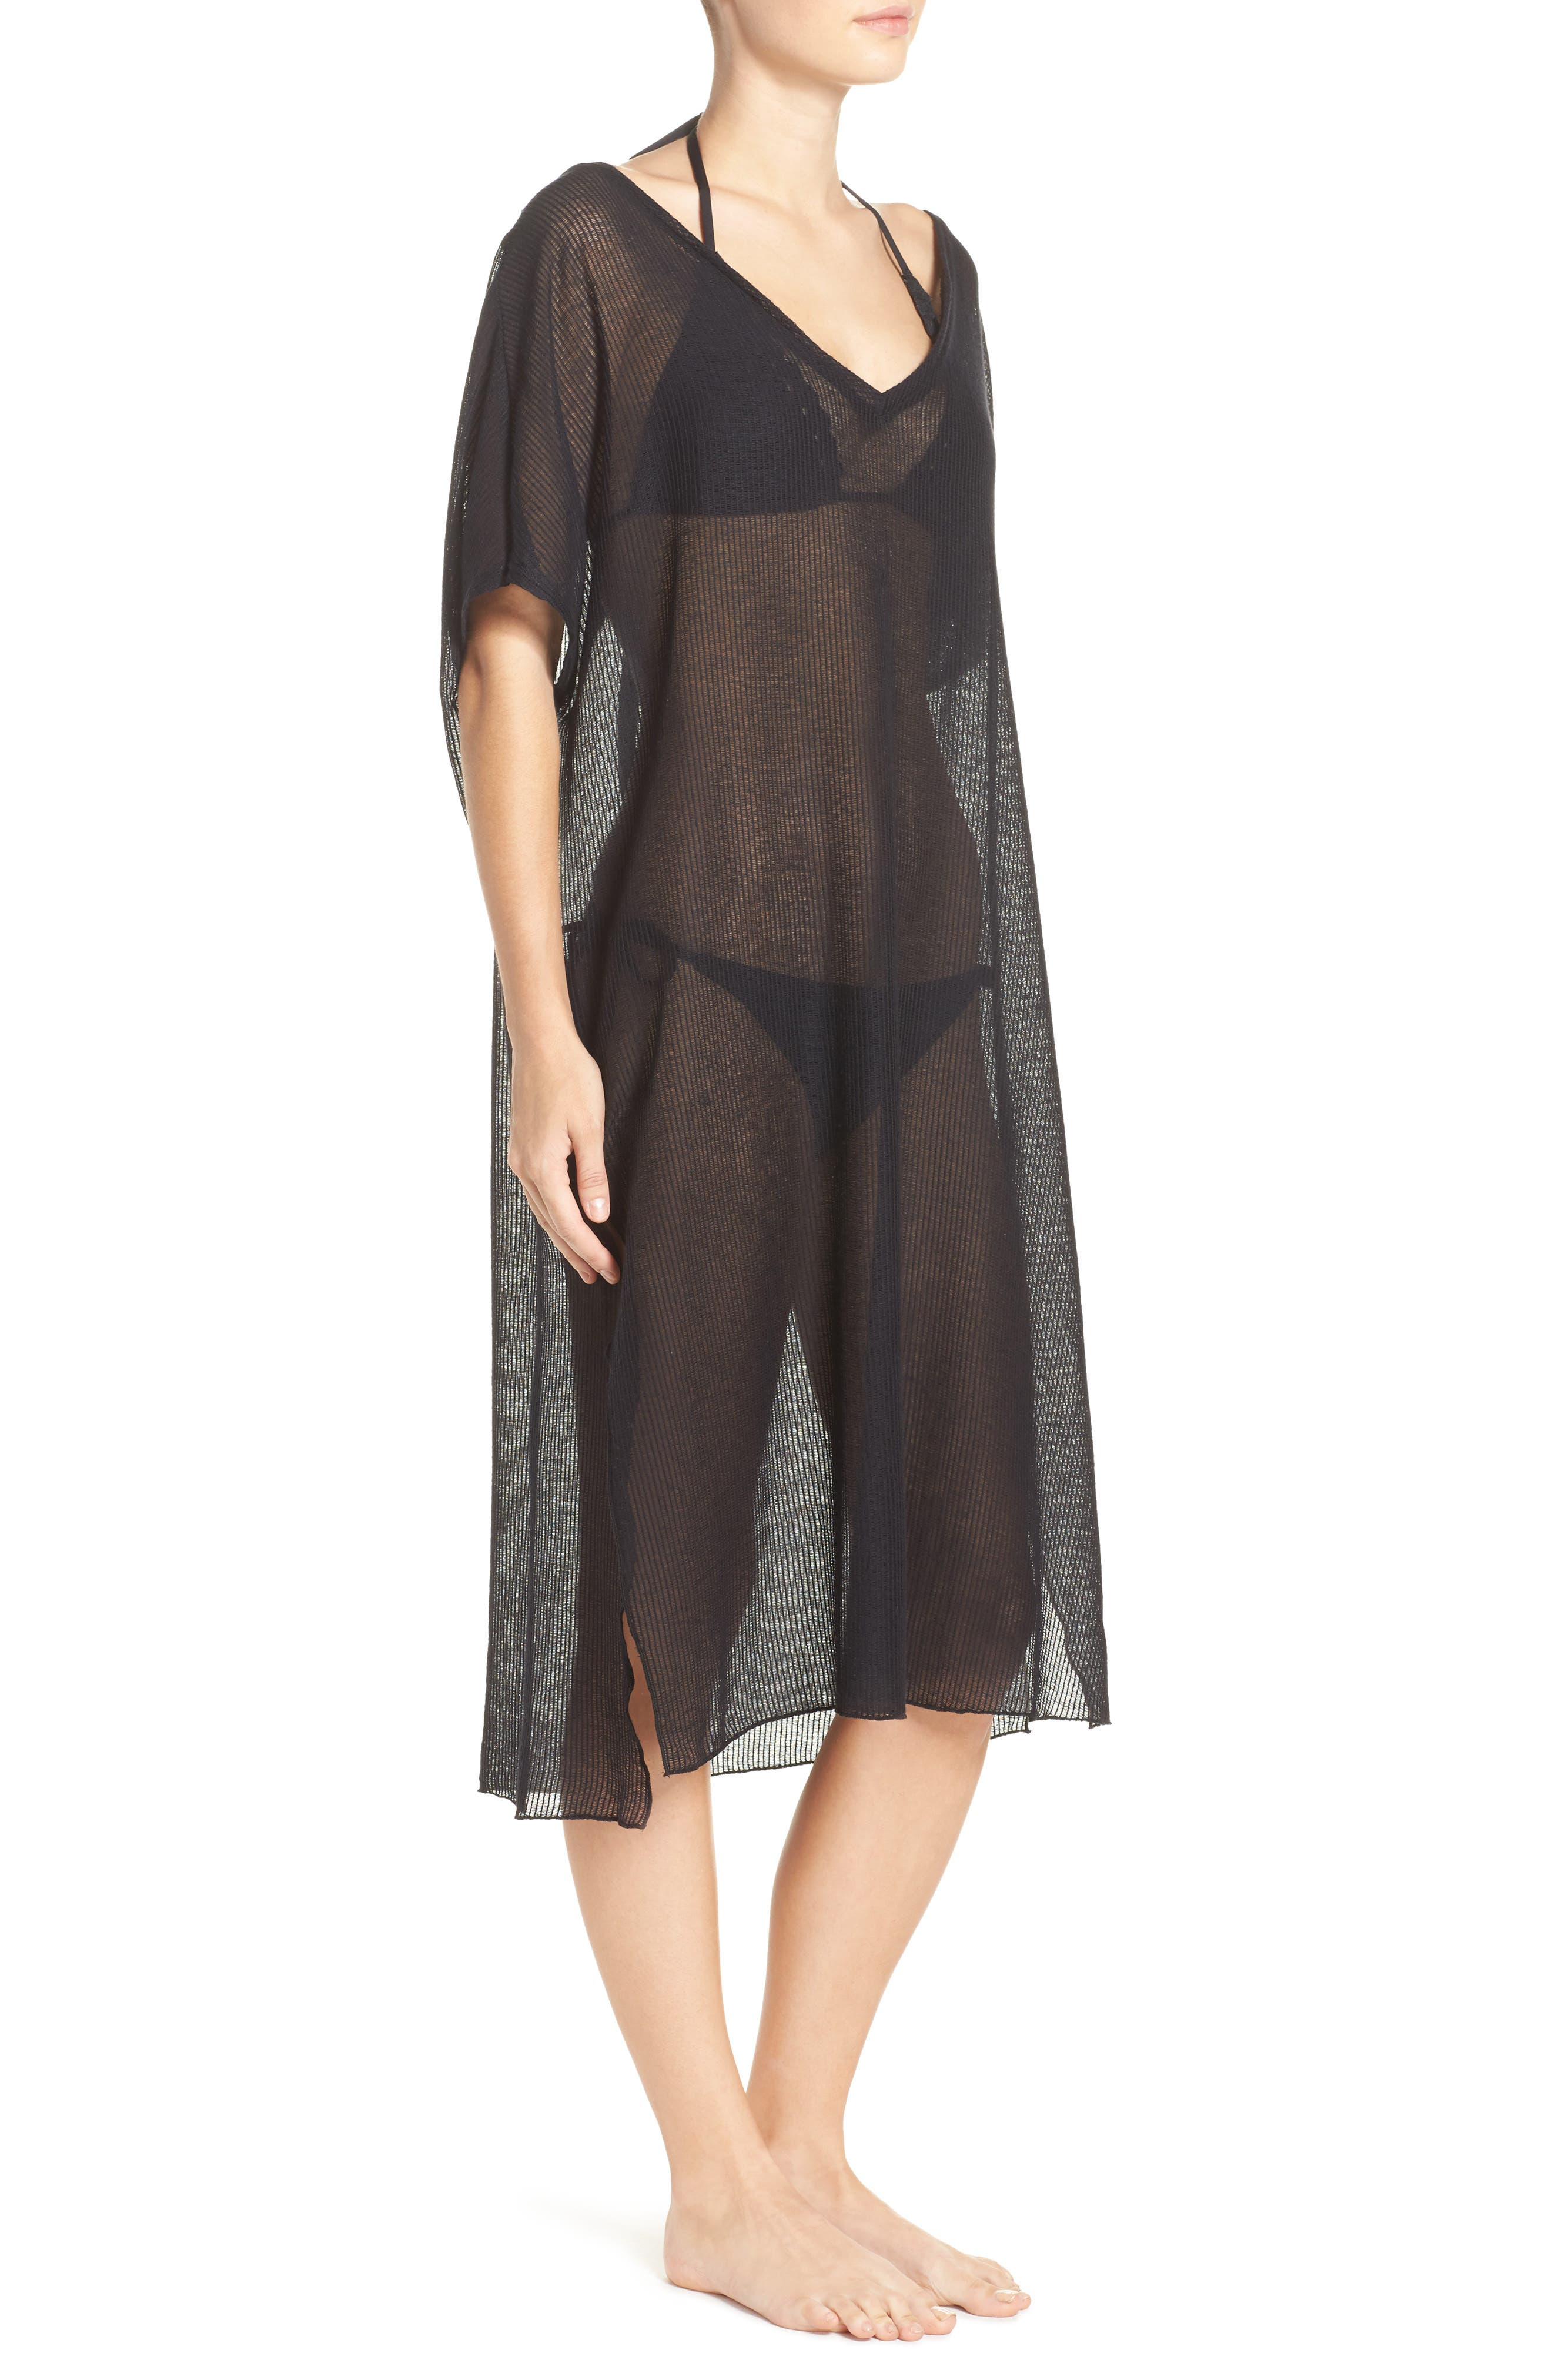 BECCA,                             By the Sea Cover-Up Tunic,                             Alternate thumbnail 4, color,                             001